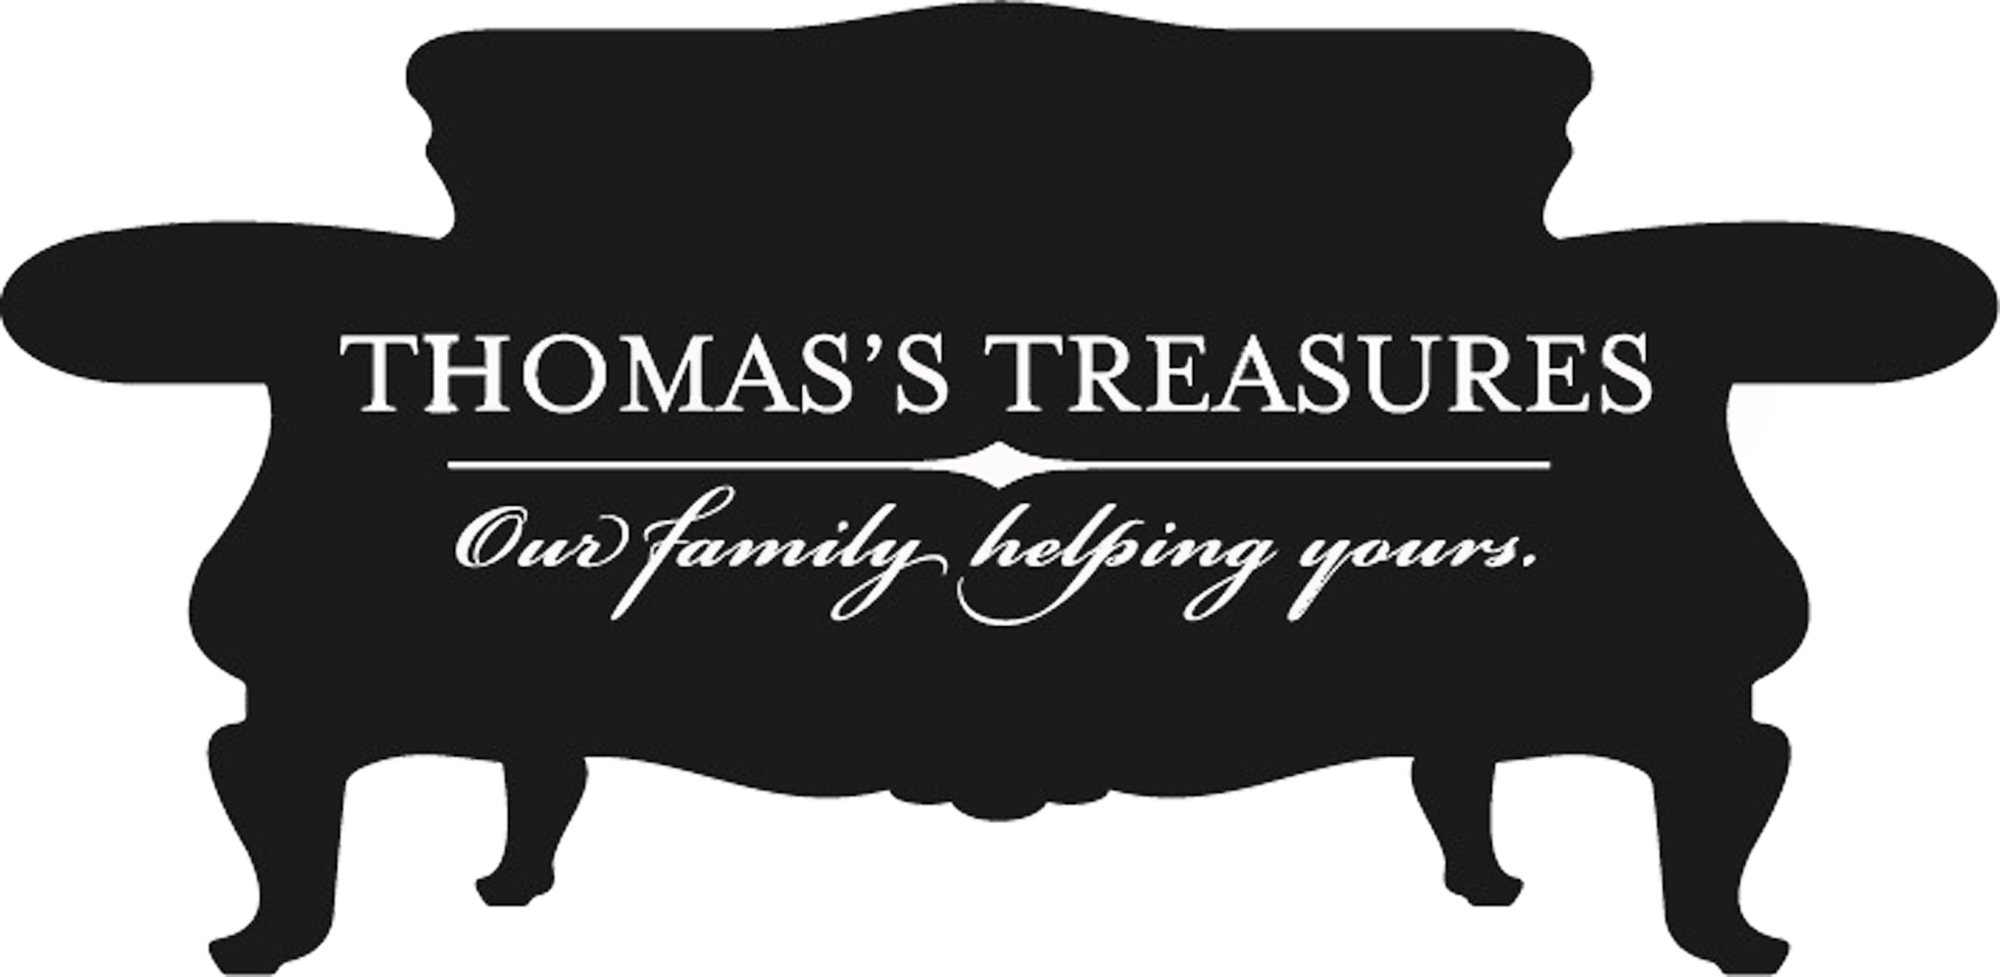 Thomas's Treasures